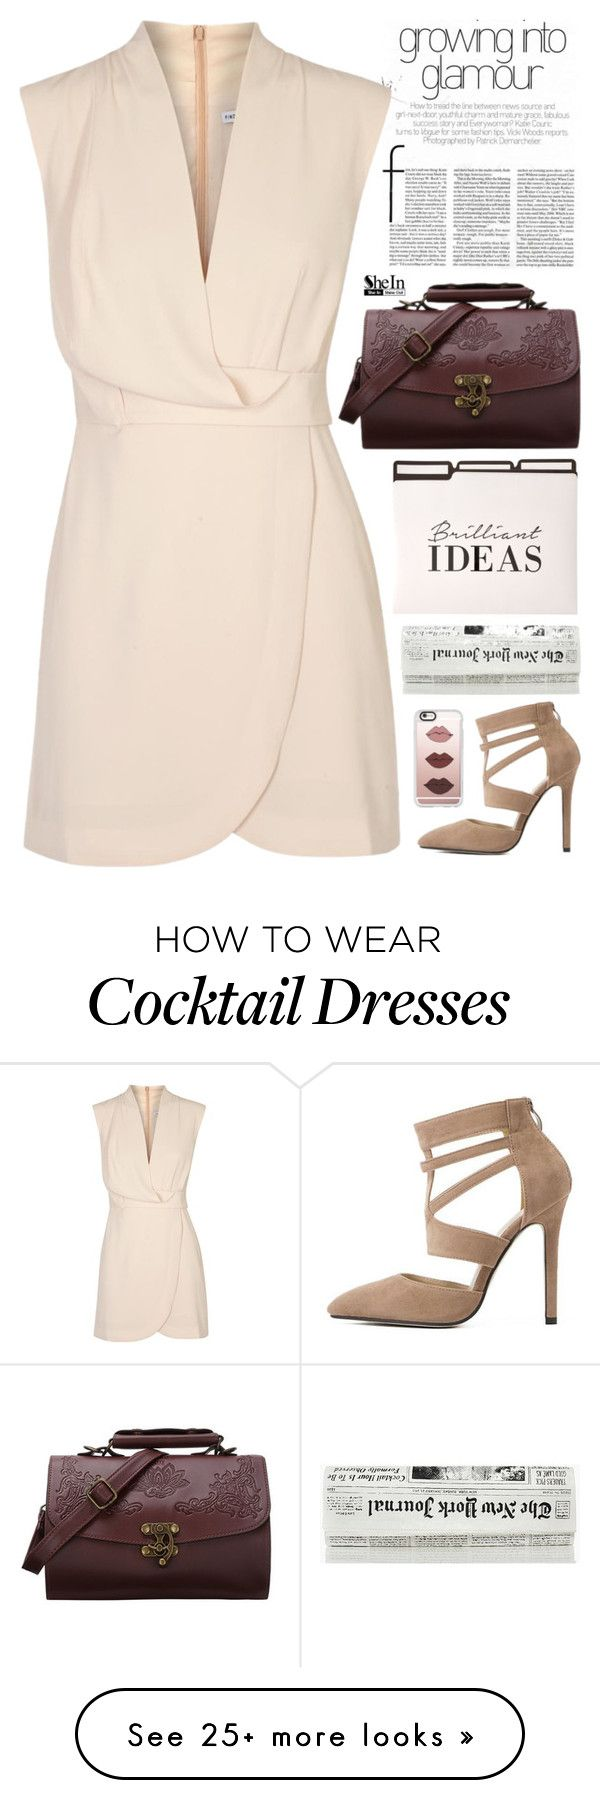 """""""grow into glamour"""" by scarlett-morwenna on Polyvore featuring Casetify, Finders Keepers and vintage"""